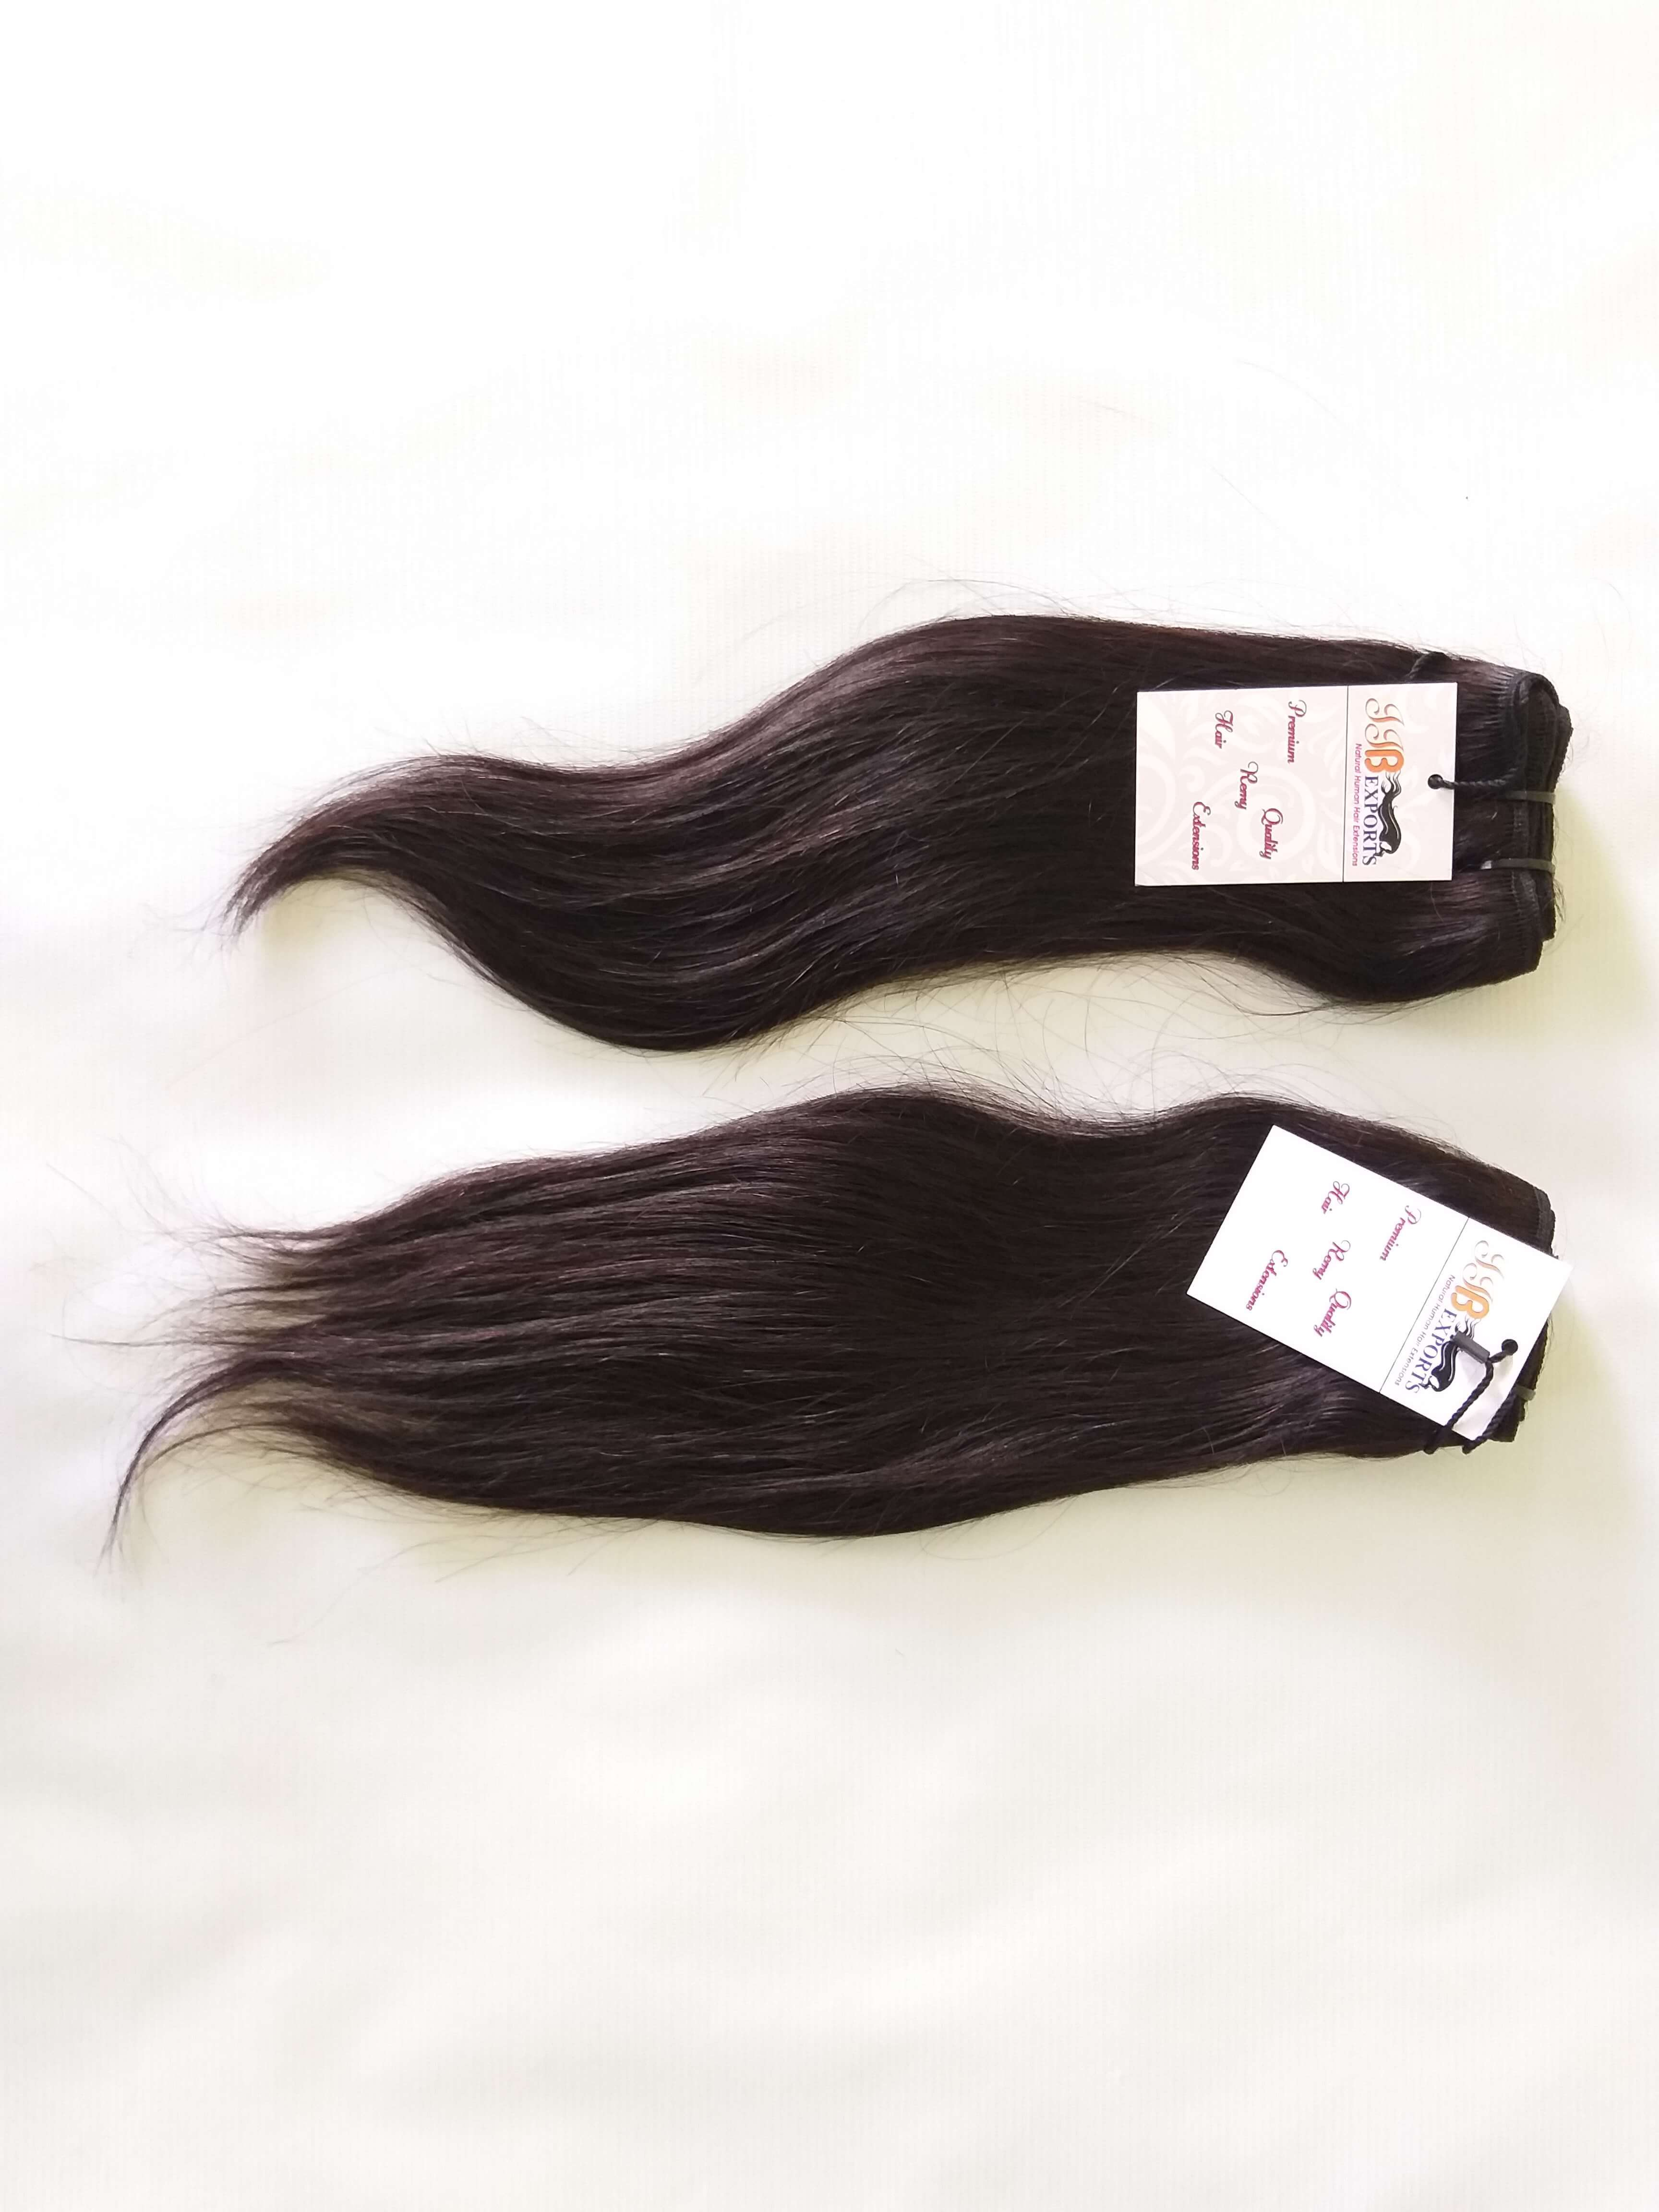 Soft & Silky Tangle Free Natural Raw Mink Unprocessed Straight/wavy Human Hair Vendors